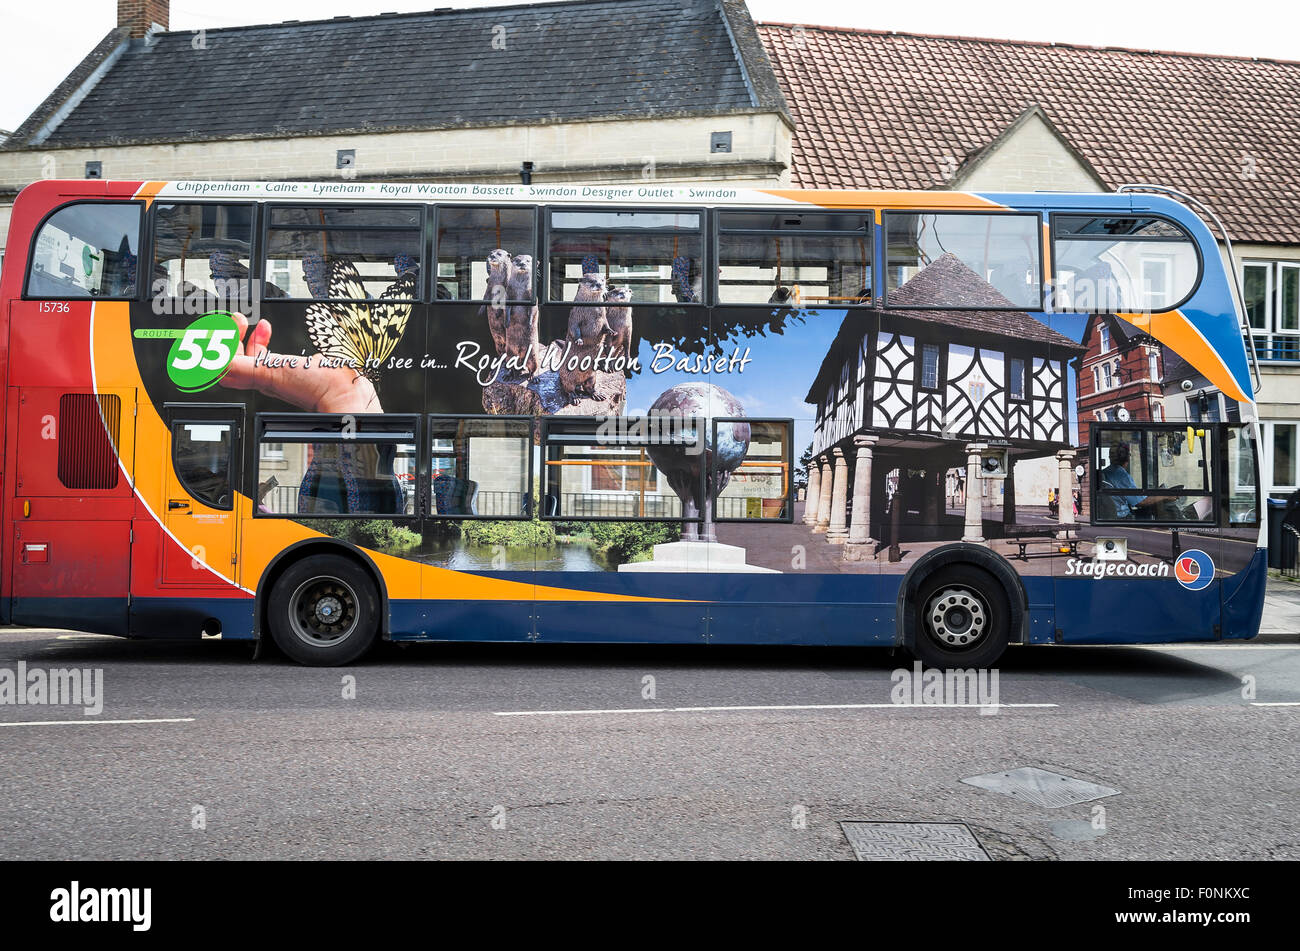 Stagecoach bus bearing pictorial illustrations of towns served on Route 55 - Stock Image